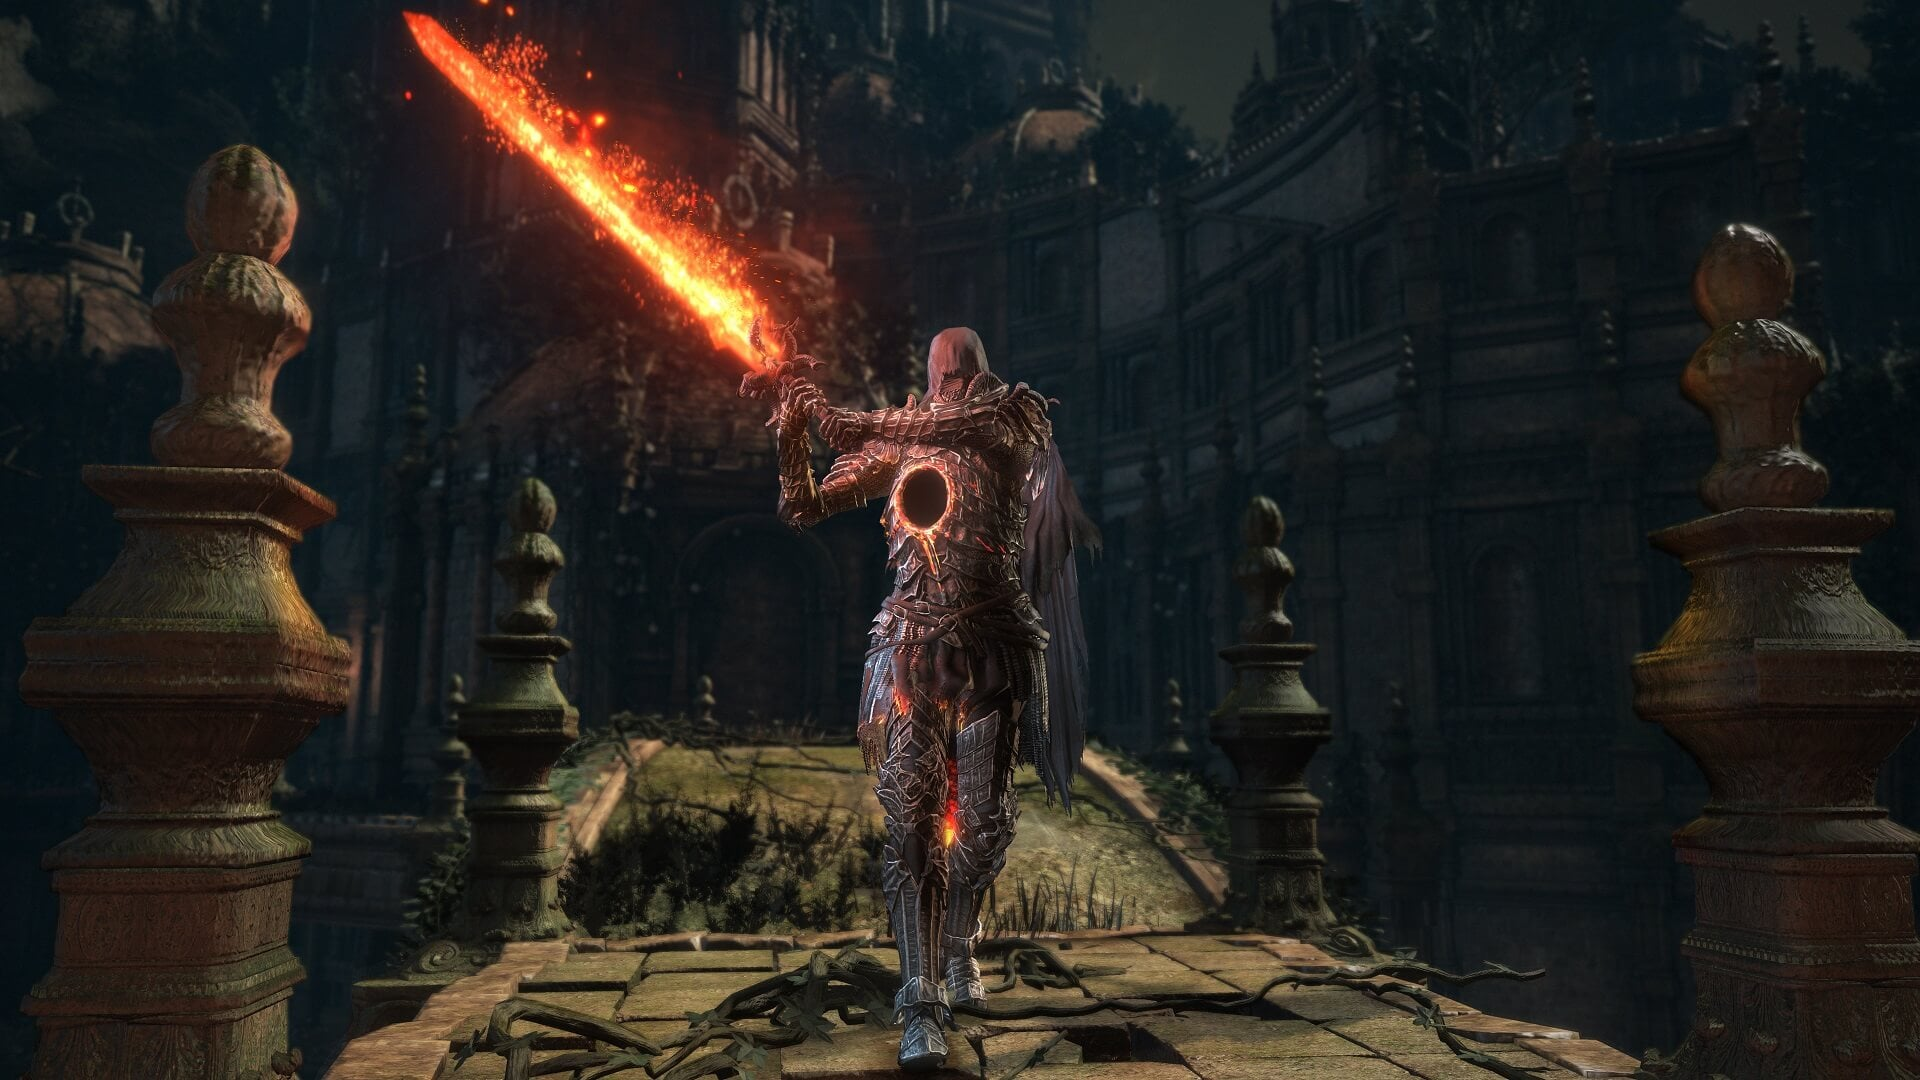 Matchmaking dark souls 3 on or off, free porn movies complete